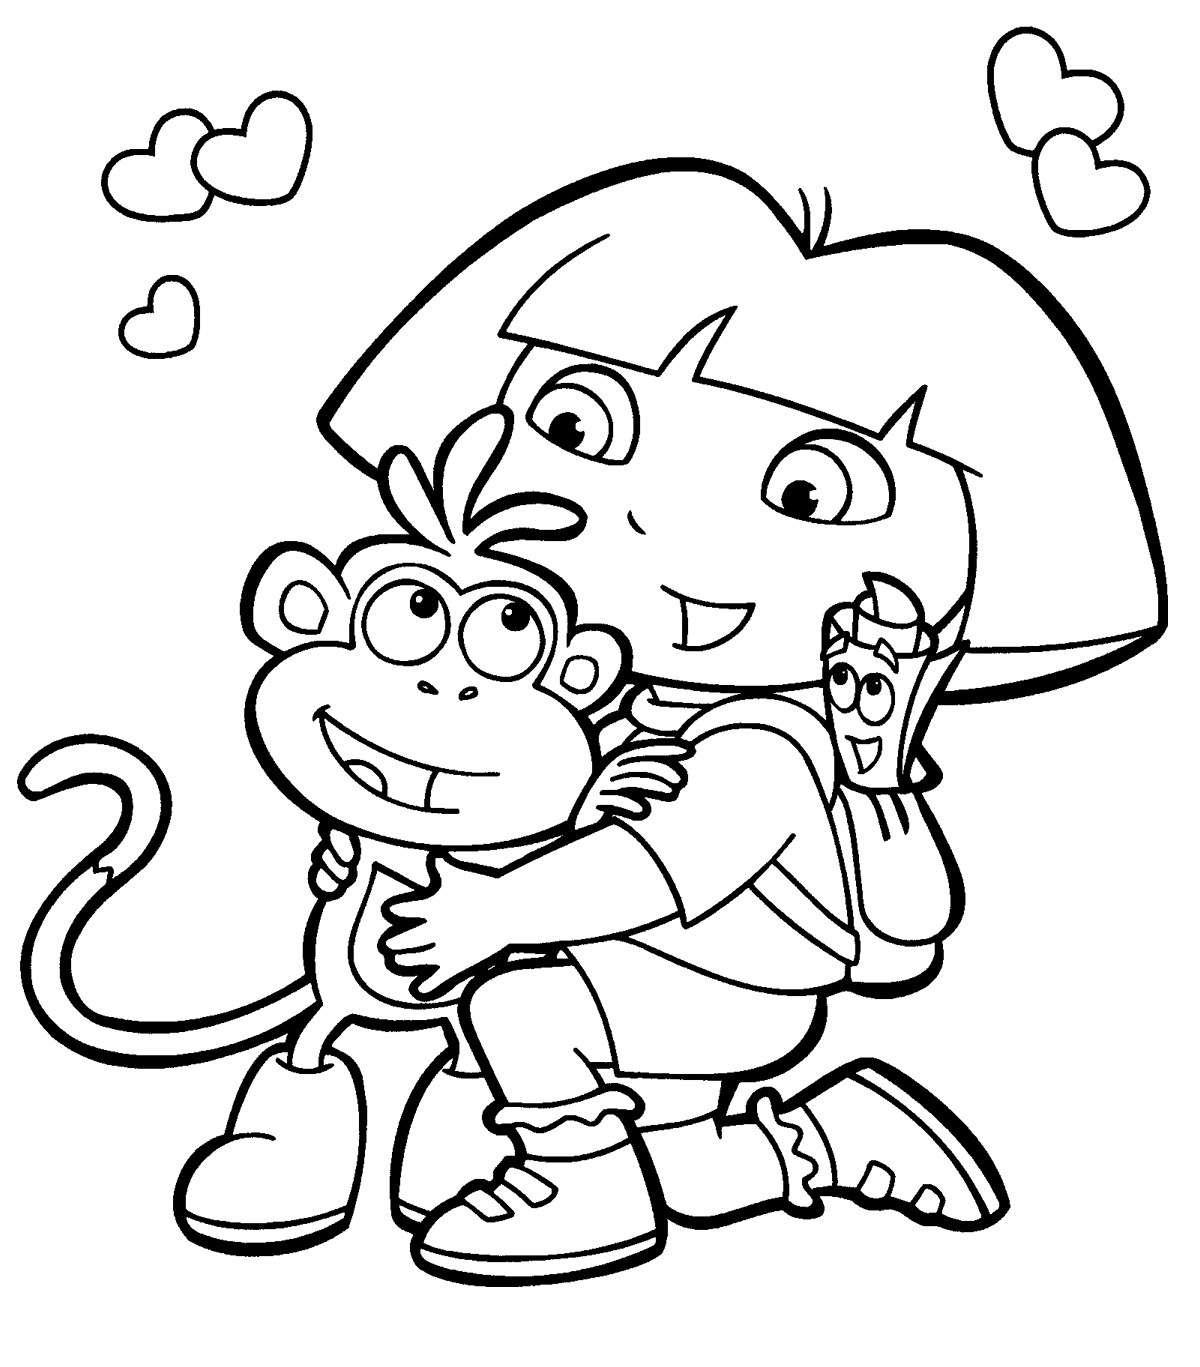 dora the explorer images to print dora coloring pages the explorer dora print images to